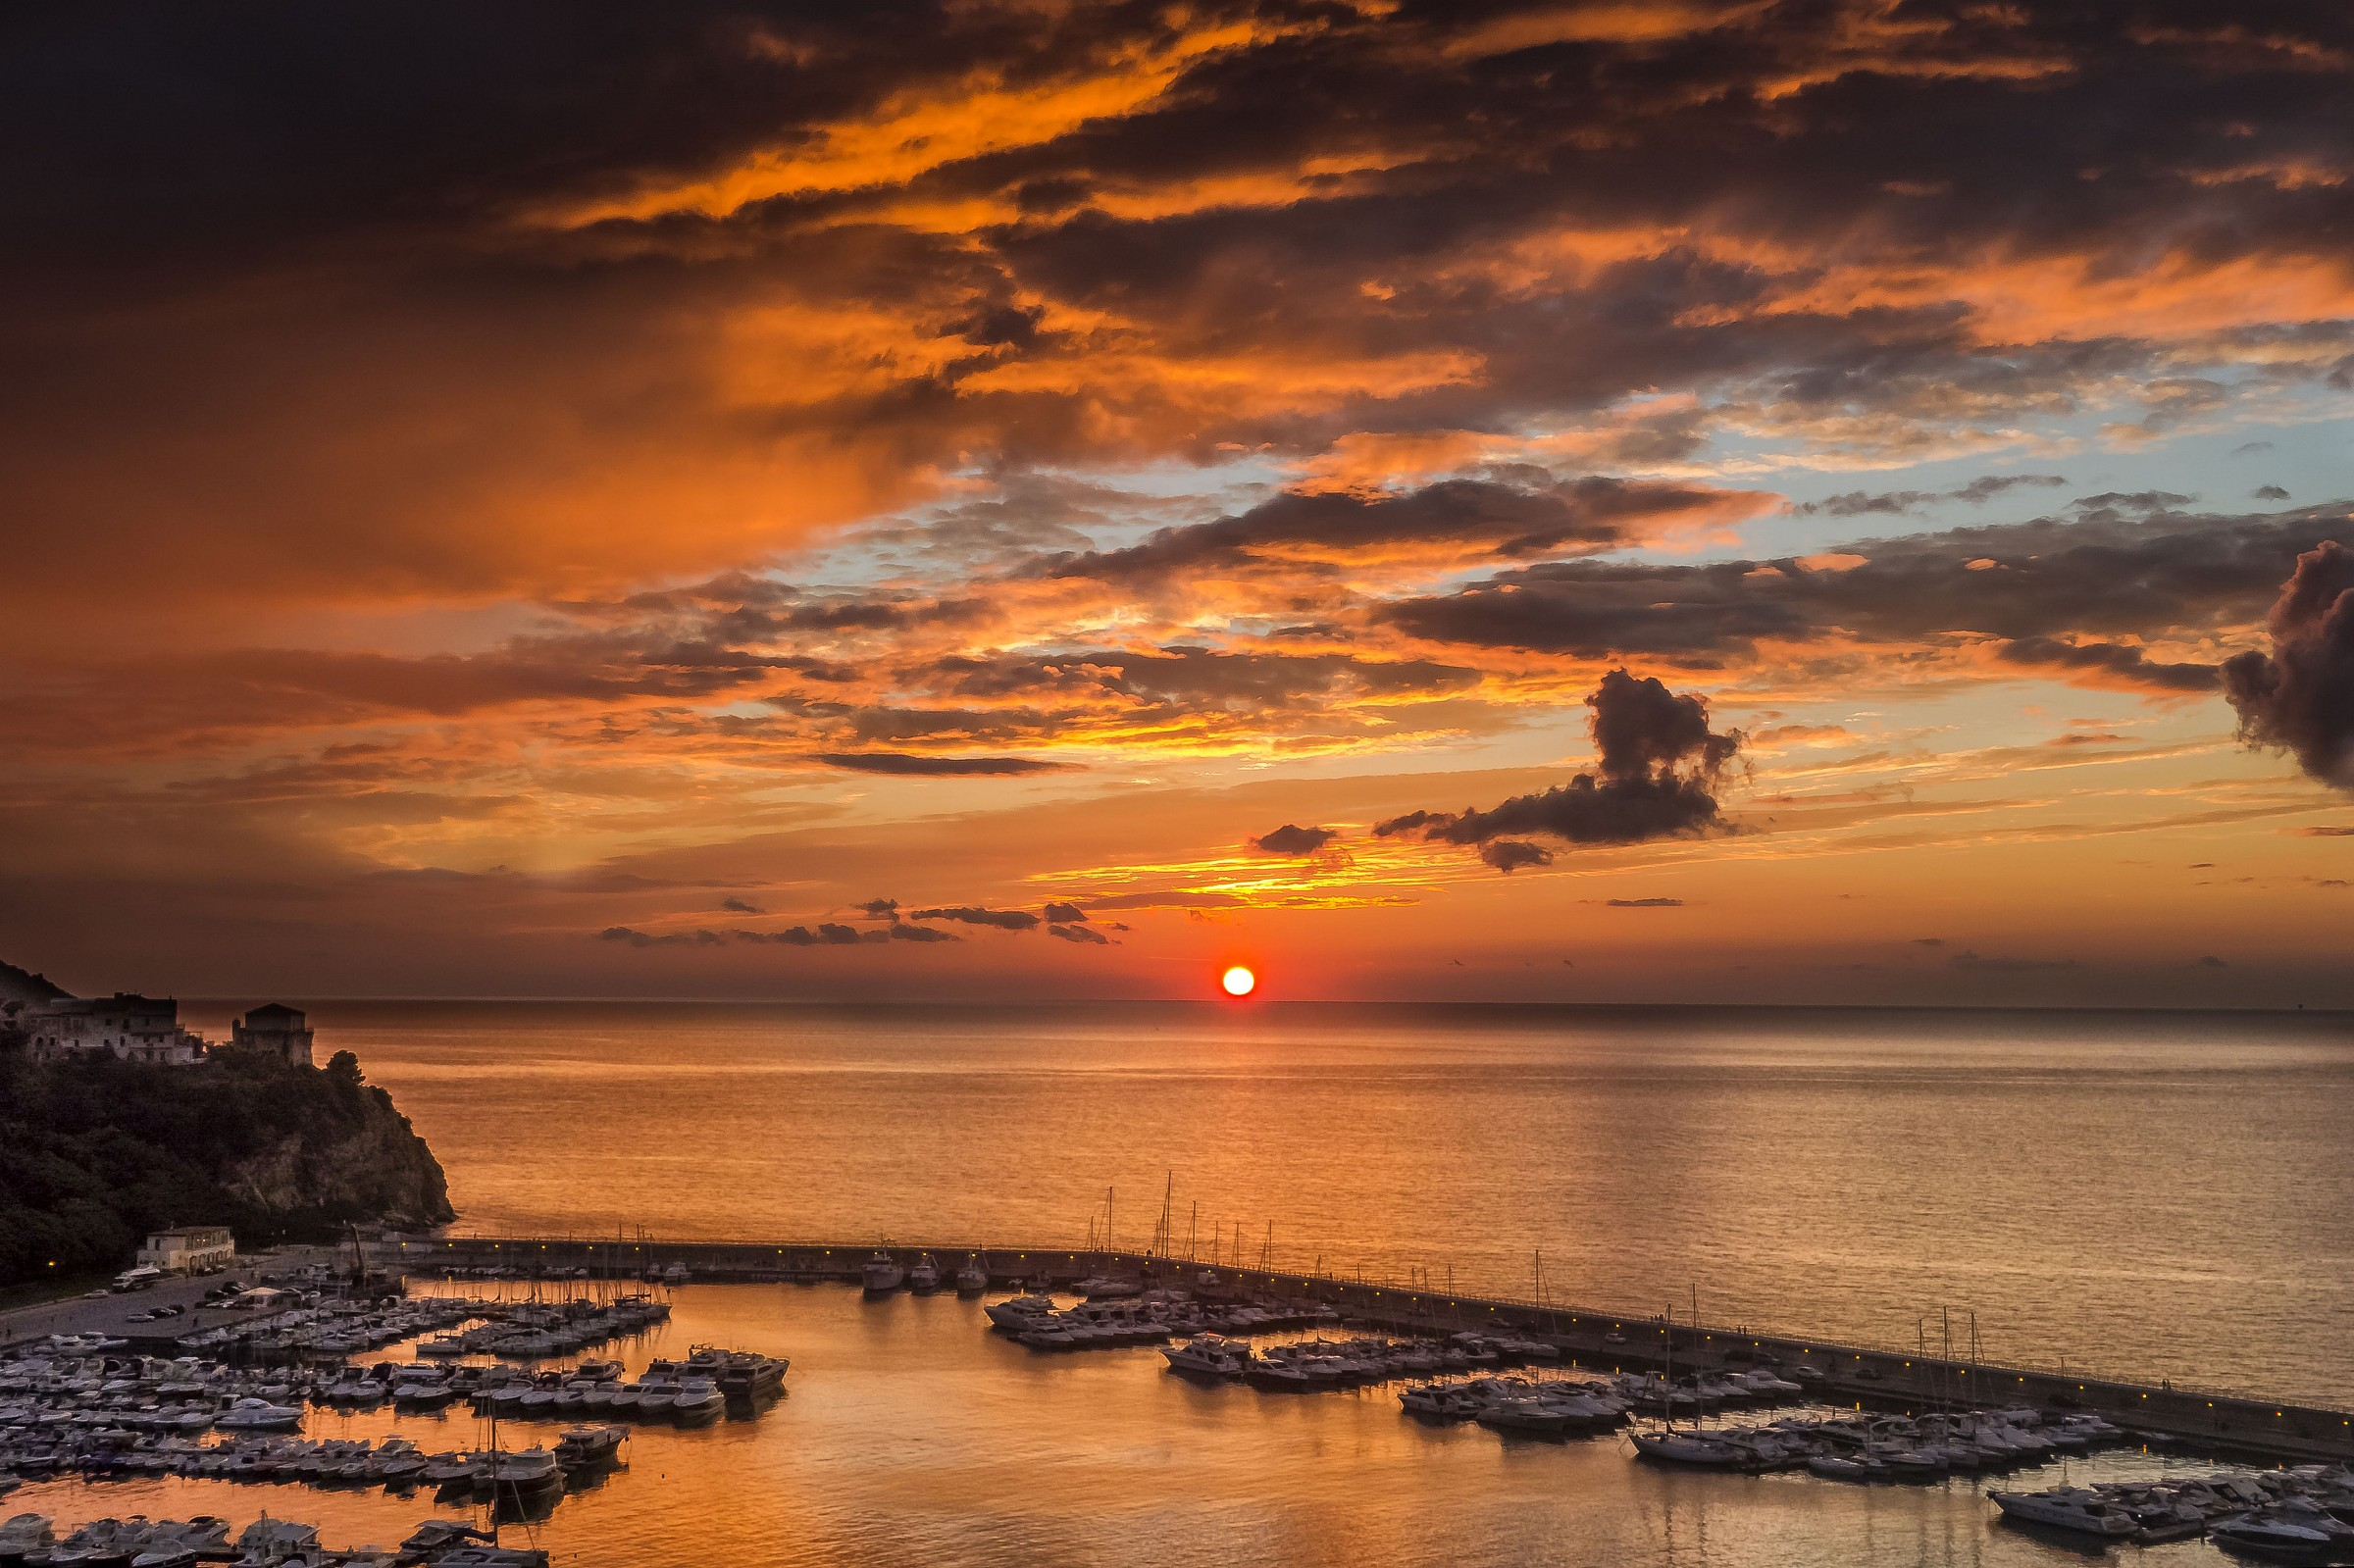 sunset at the port of agropoli 2...